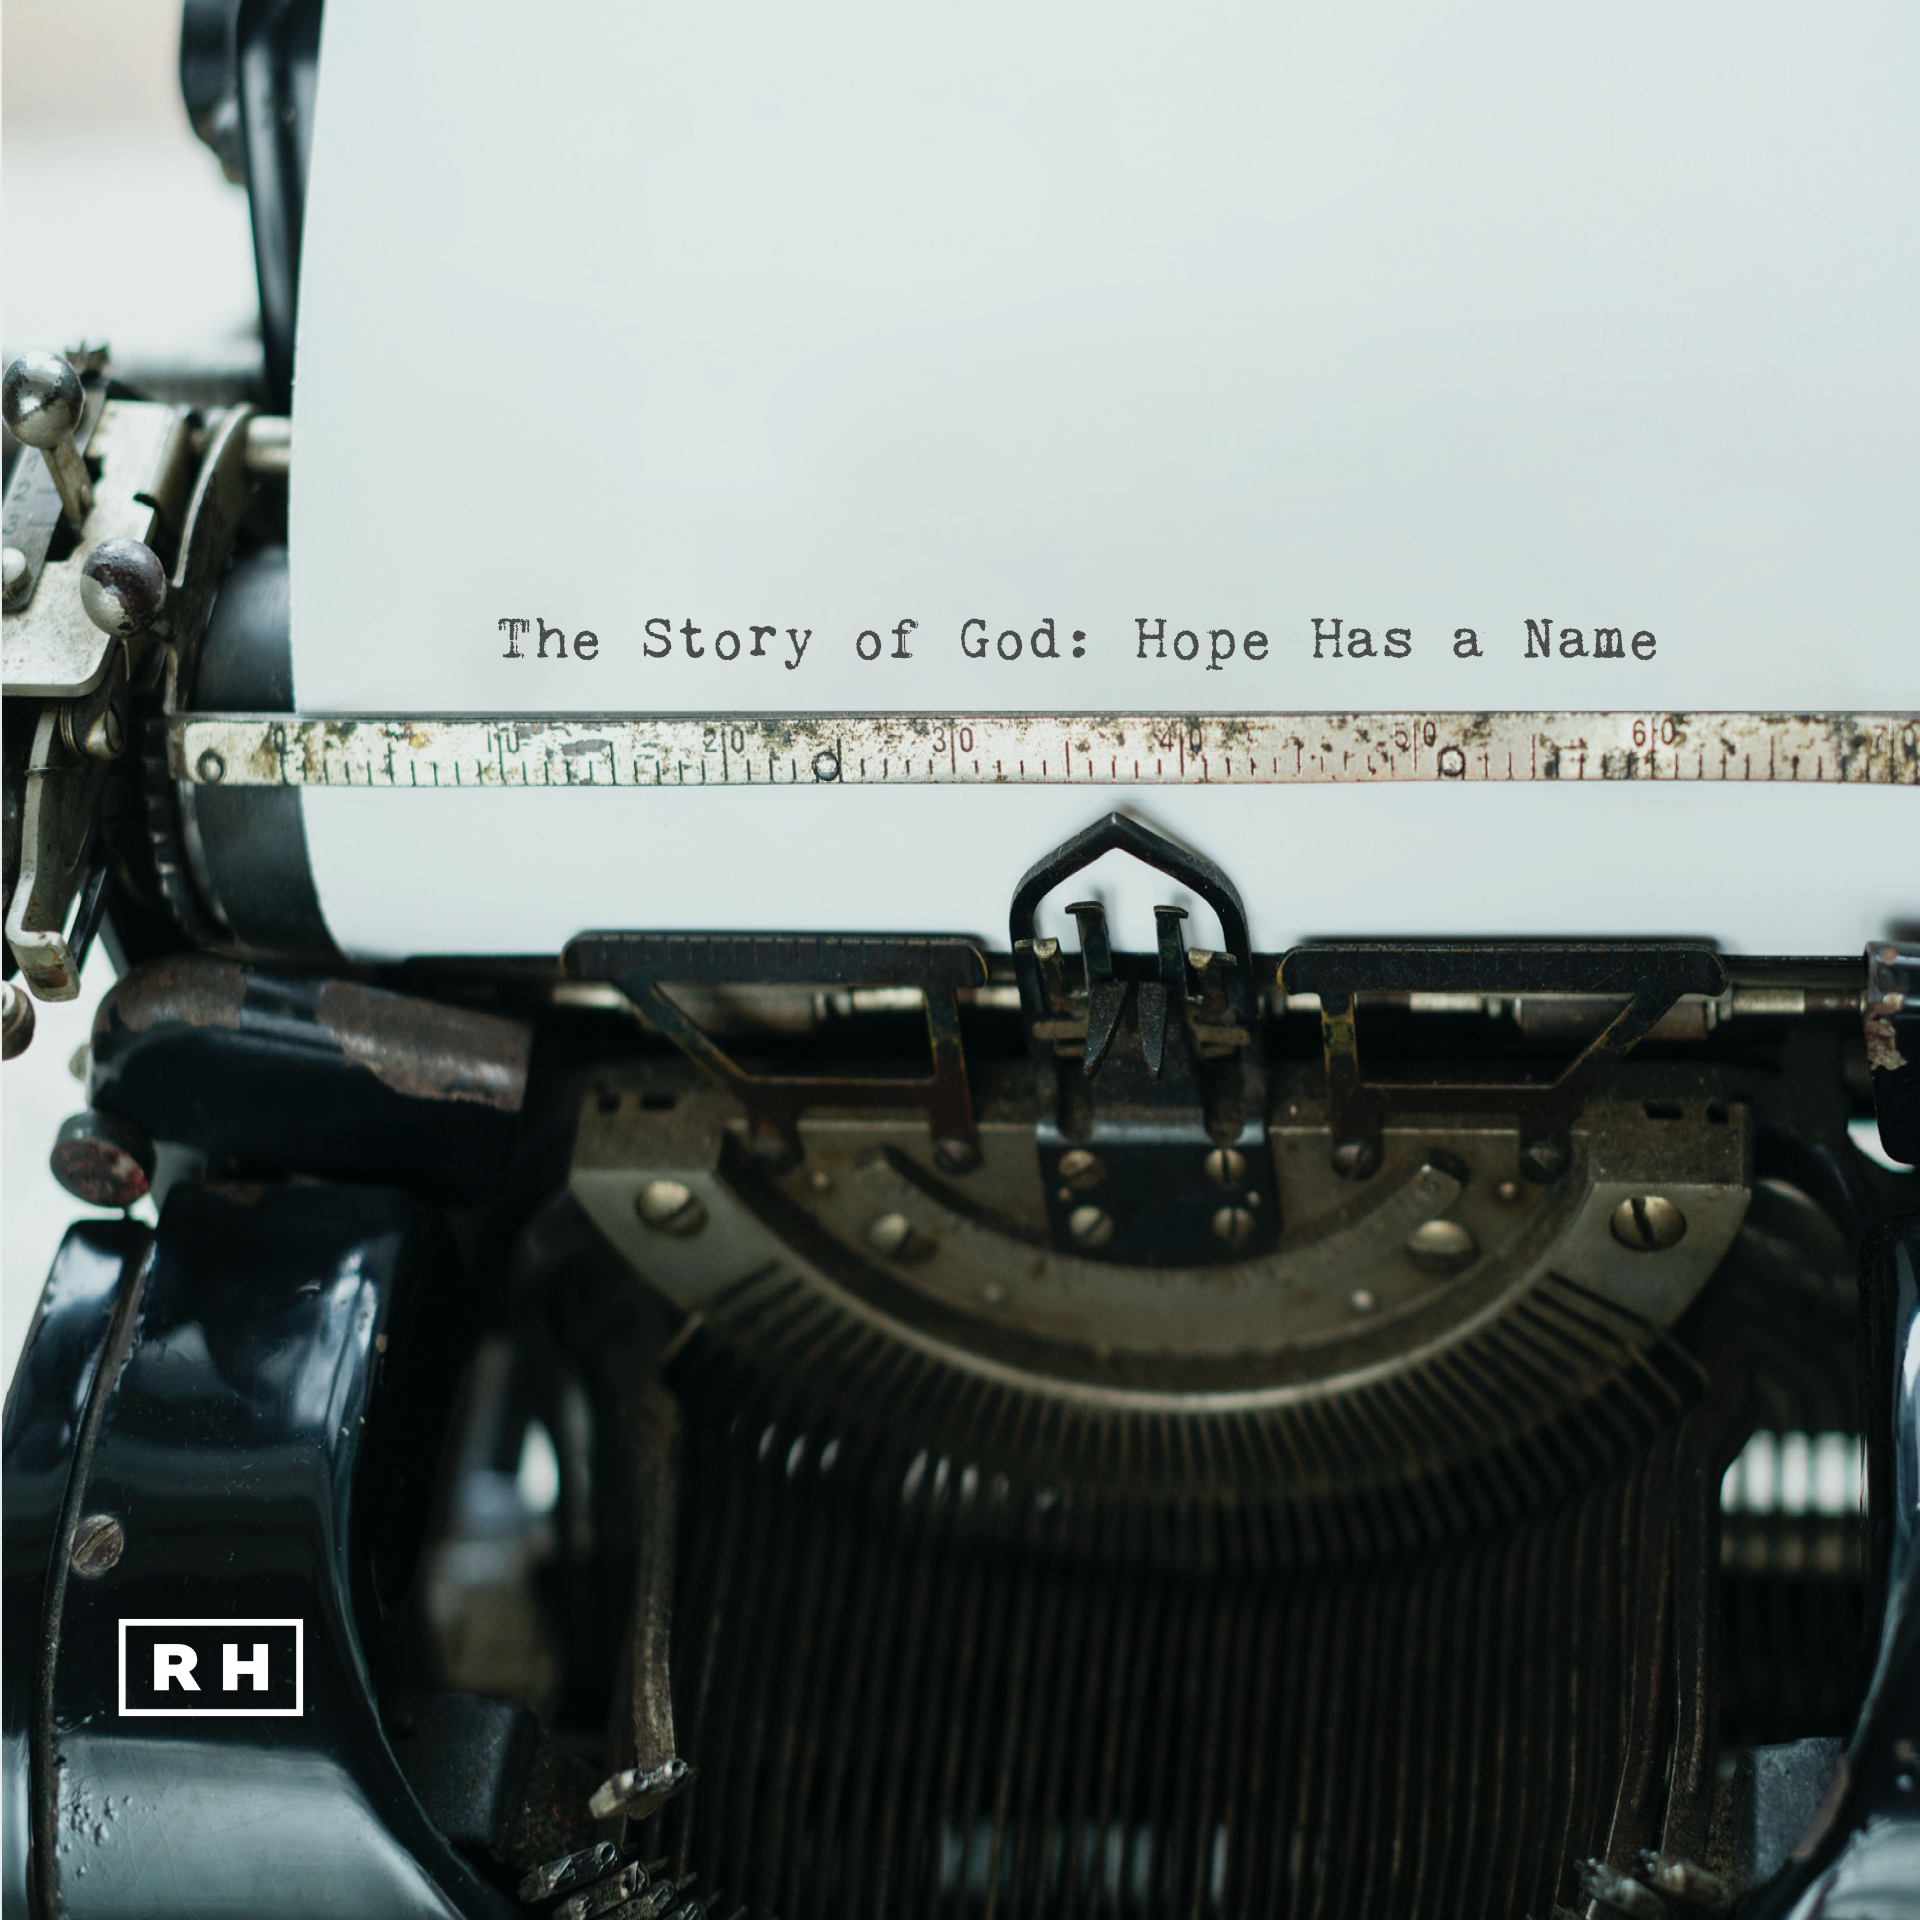 Hope Remains When God is Silent - Mat Turcato